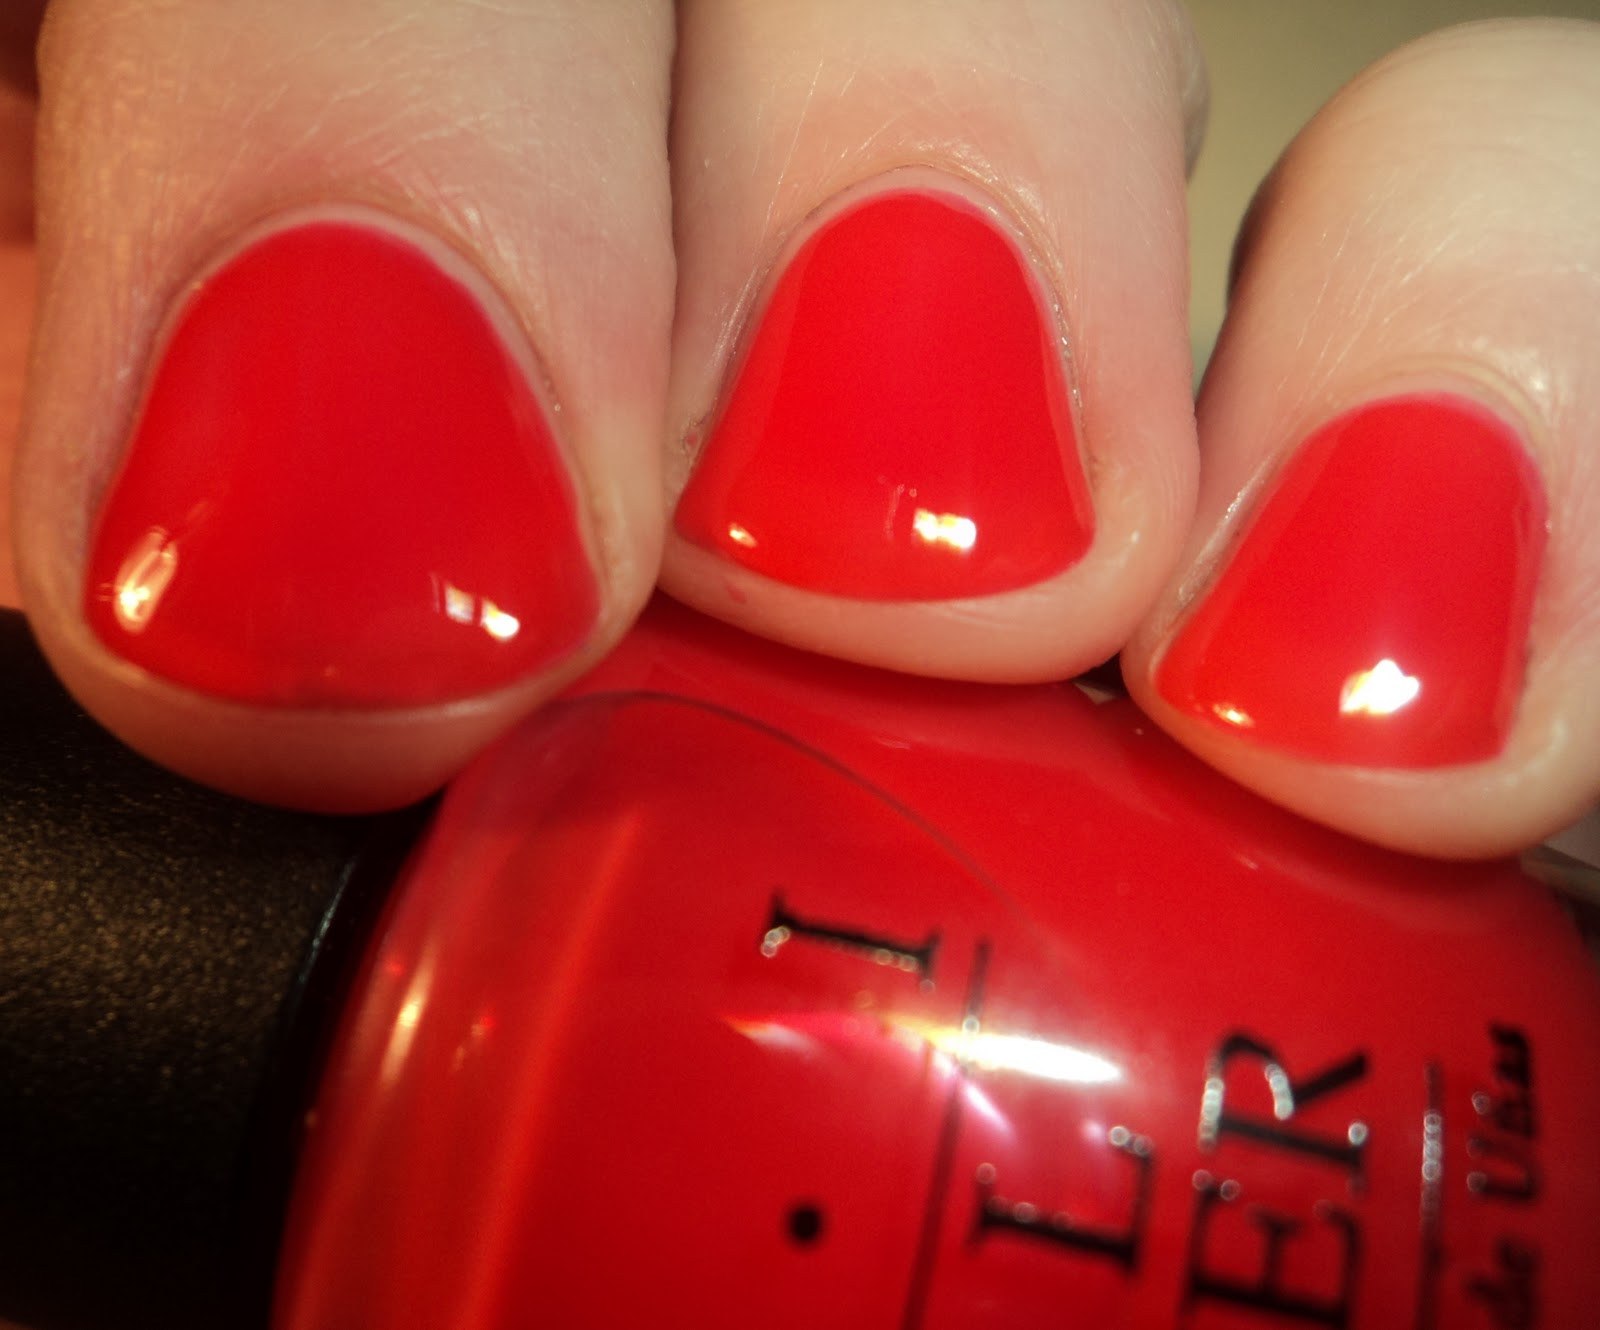 Nails Orange Leaning Tomato Red Opi S Pr Info Stated Rosy Pageant Peach But On Me This Was Definitely A Y I Get The Hint Of